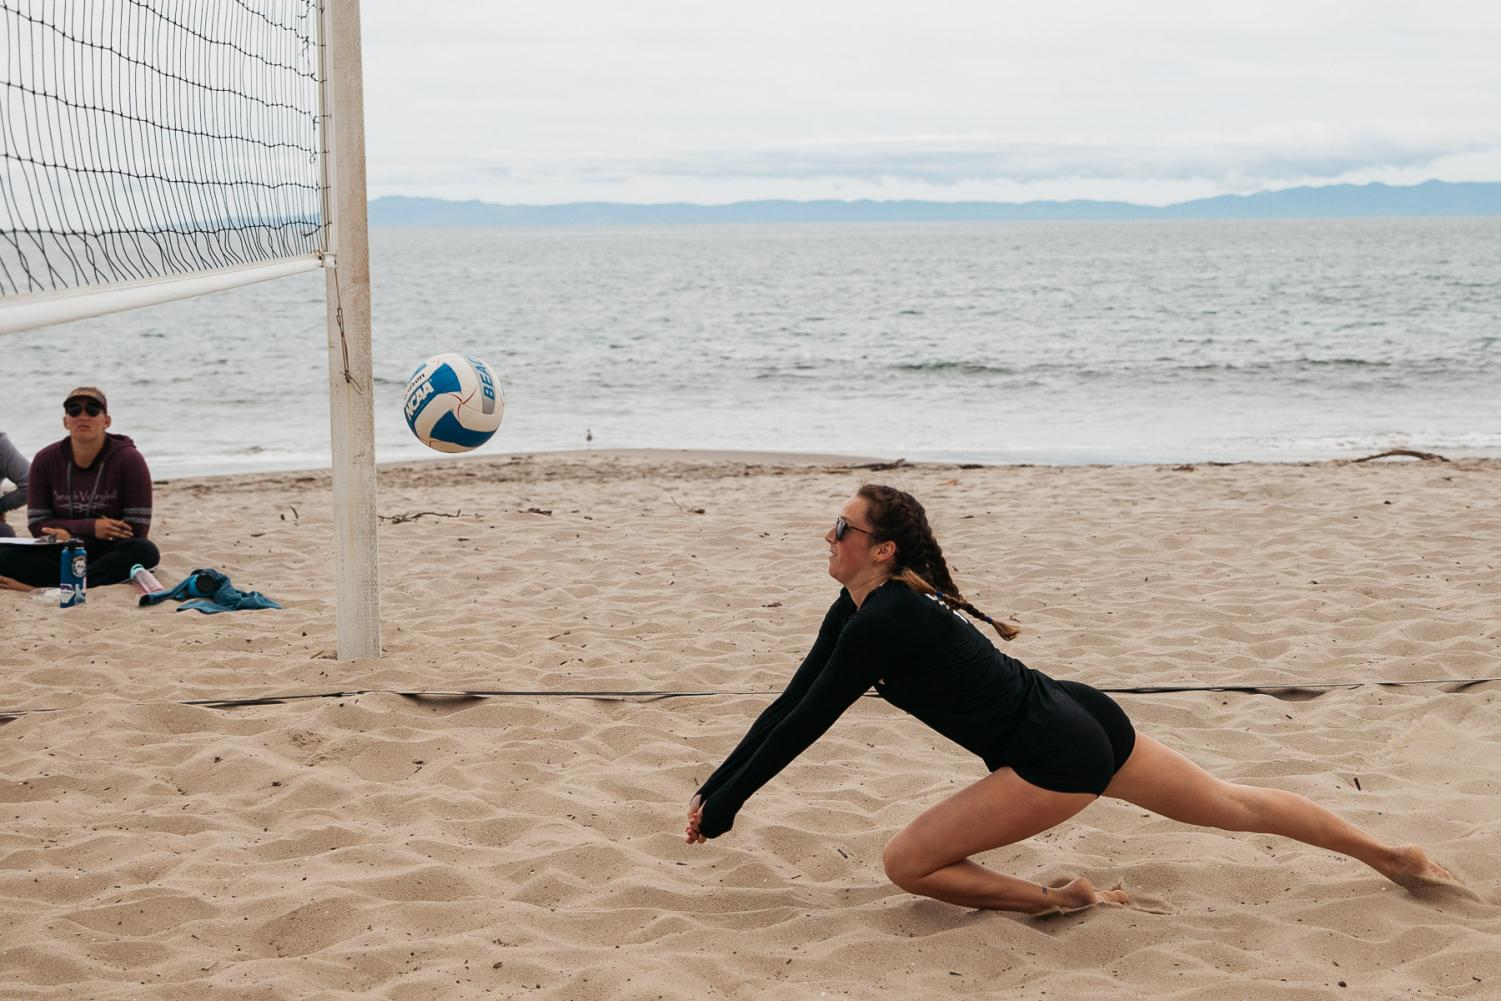 Emma Esparza dives for the ball on Friday, April 5, 2019, at East Beach in Santa Barbara, Calif.